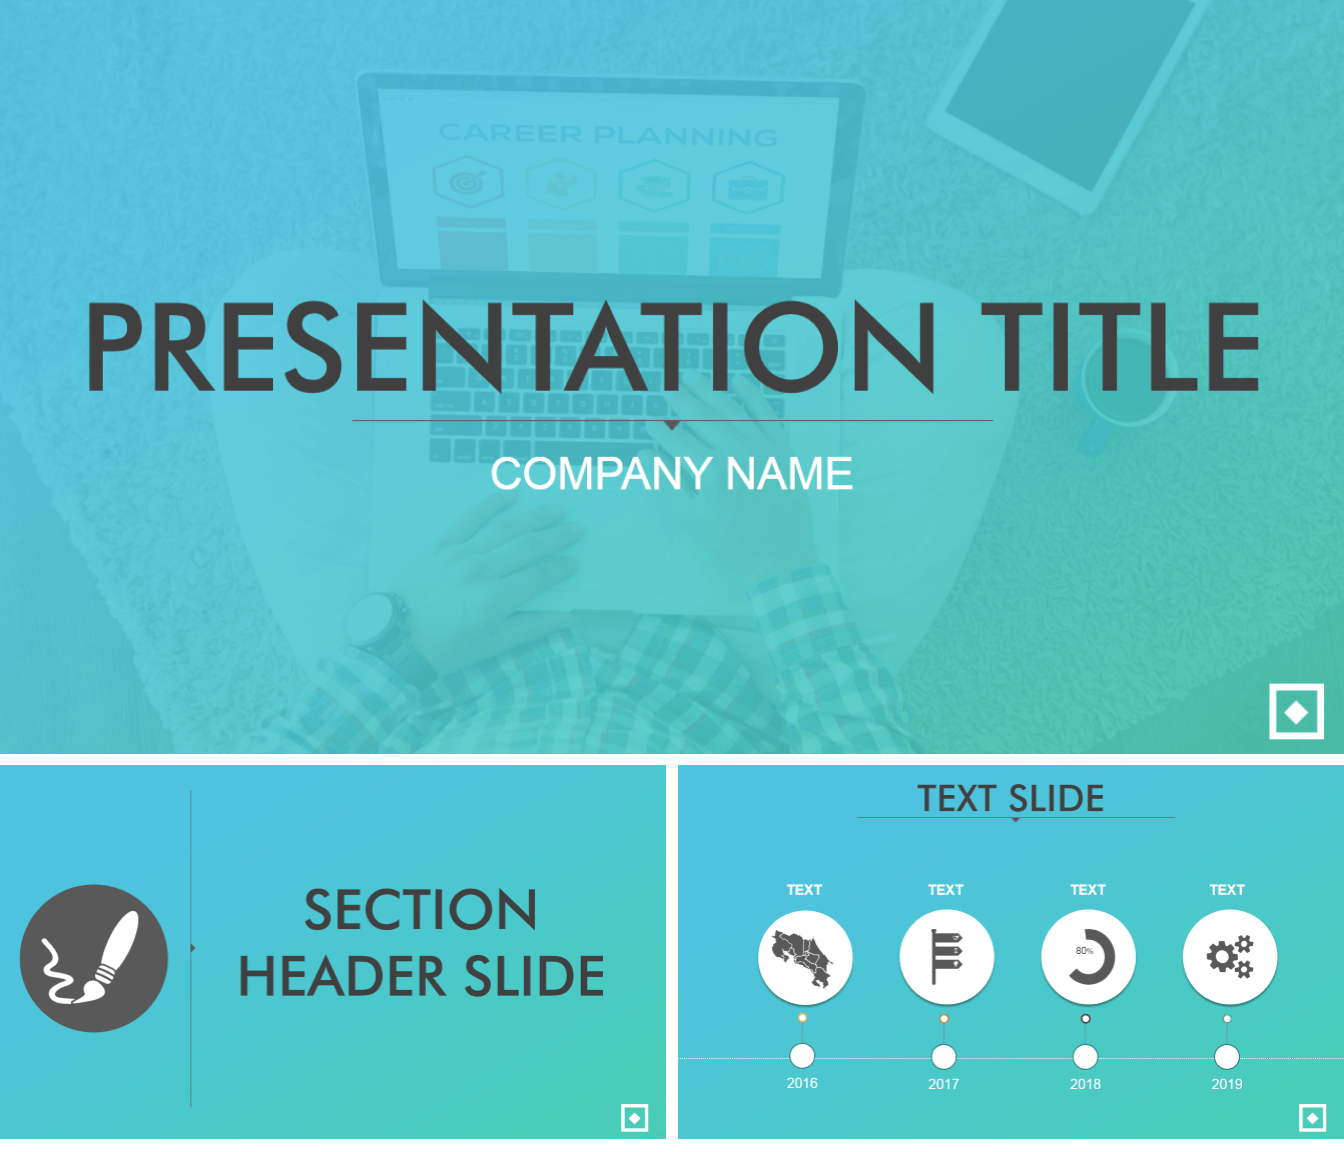 7 Amazing PowerPoint Template Designs for Your Company or Personal ...